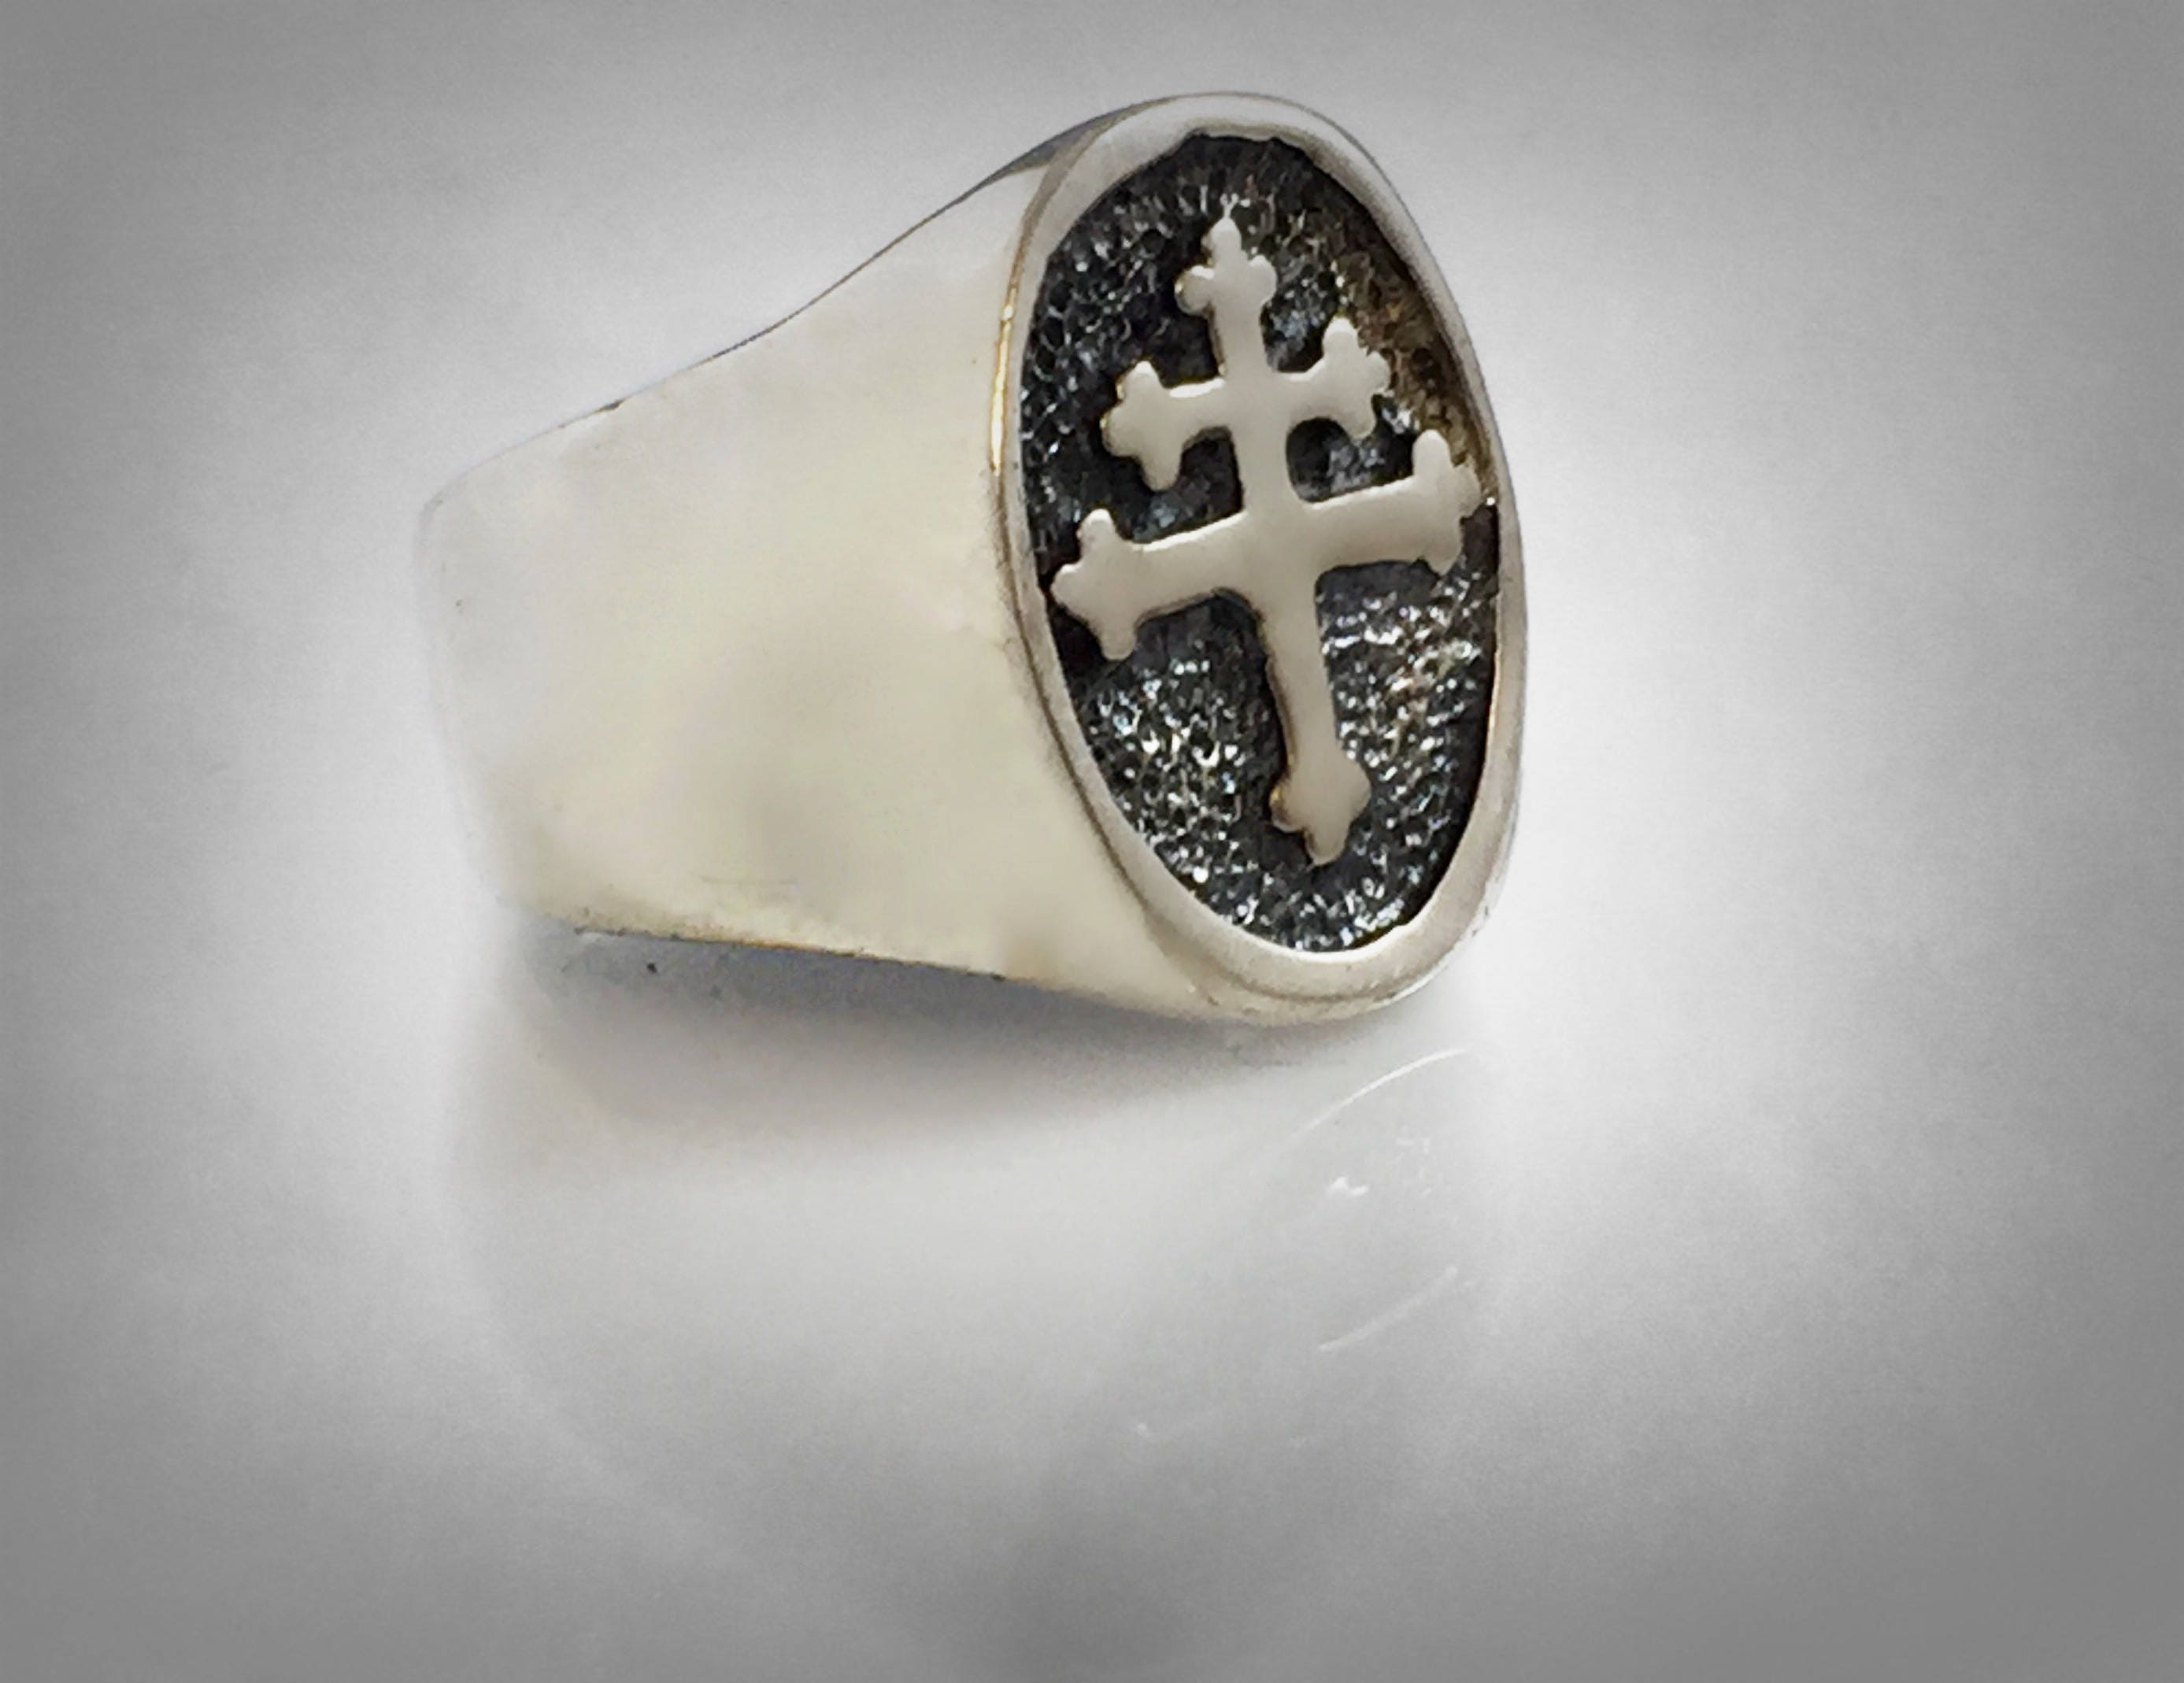 Cross Of Lorraine Magnum Pi Team Ring Sterling Silver 925